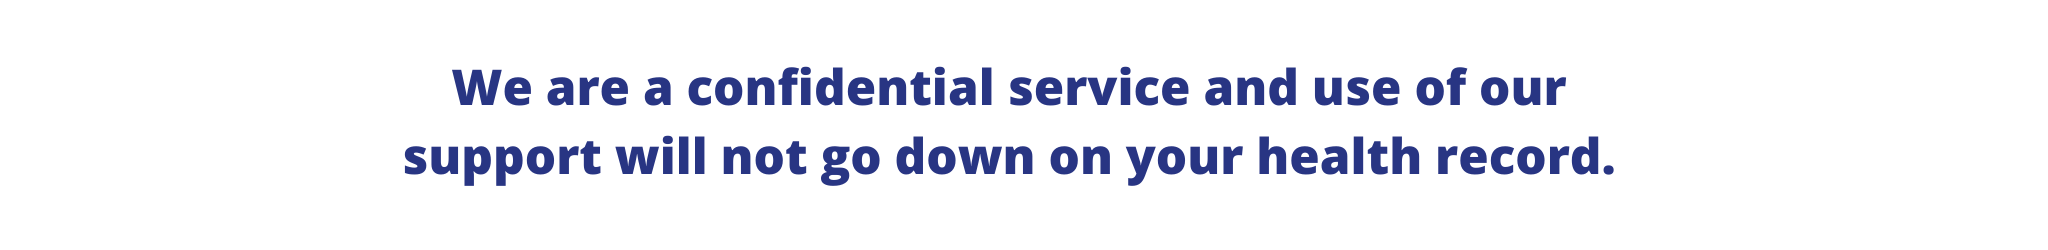 We are a confidential service and use of our support will not go down on your health record.